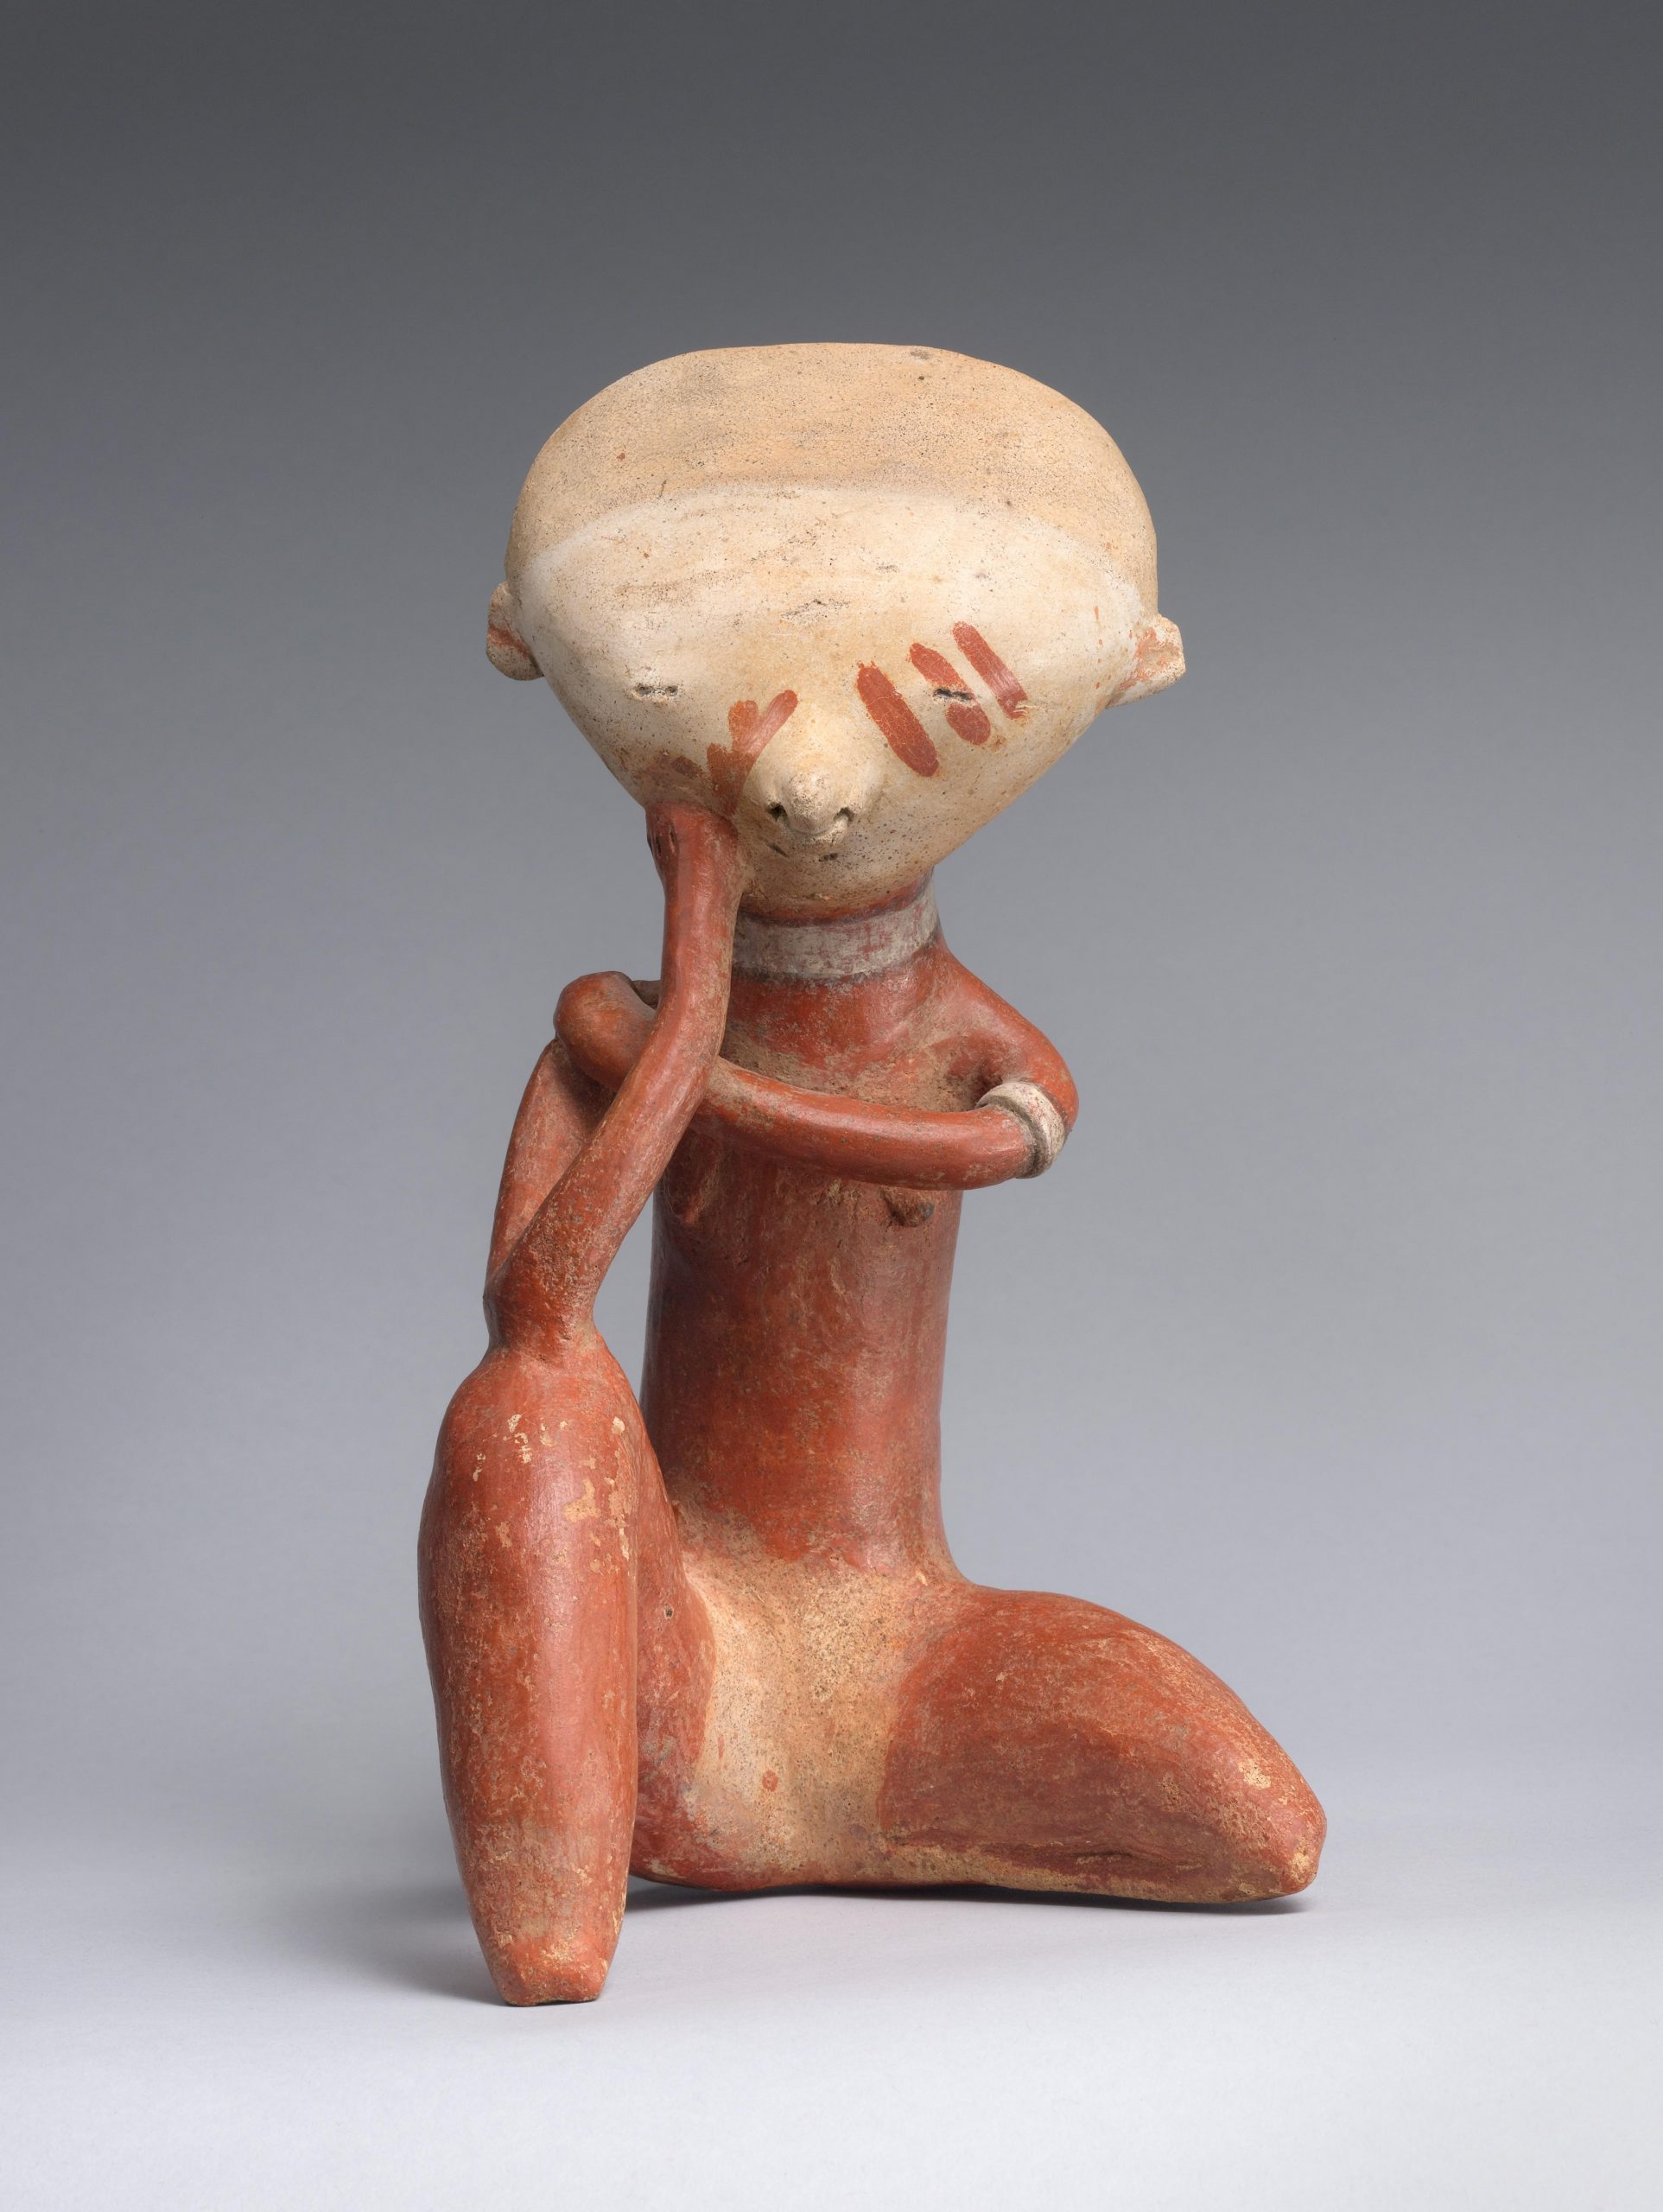 A stylized ceramic figure with a red body and beige head, red face paint, and a hand resting on its face.